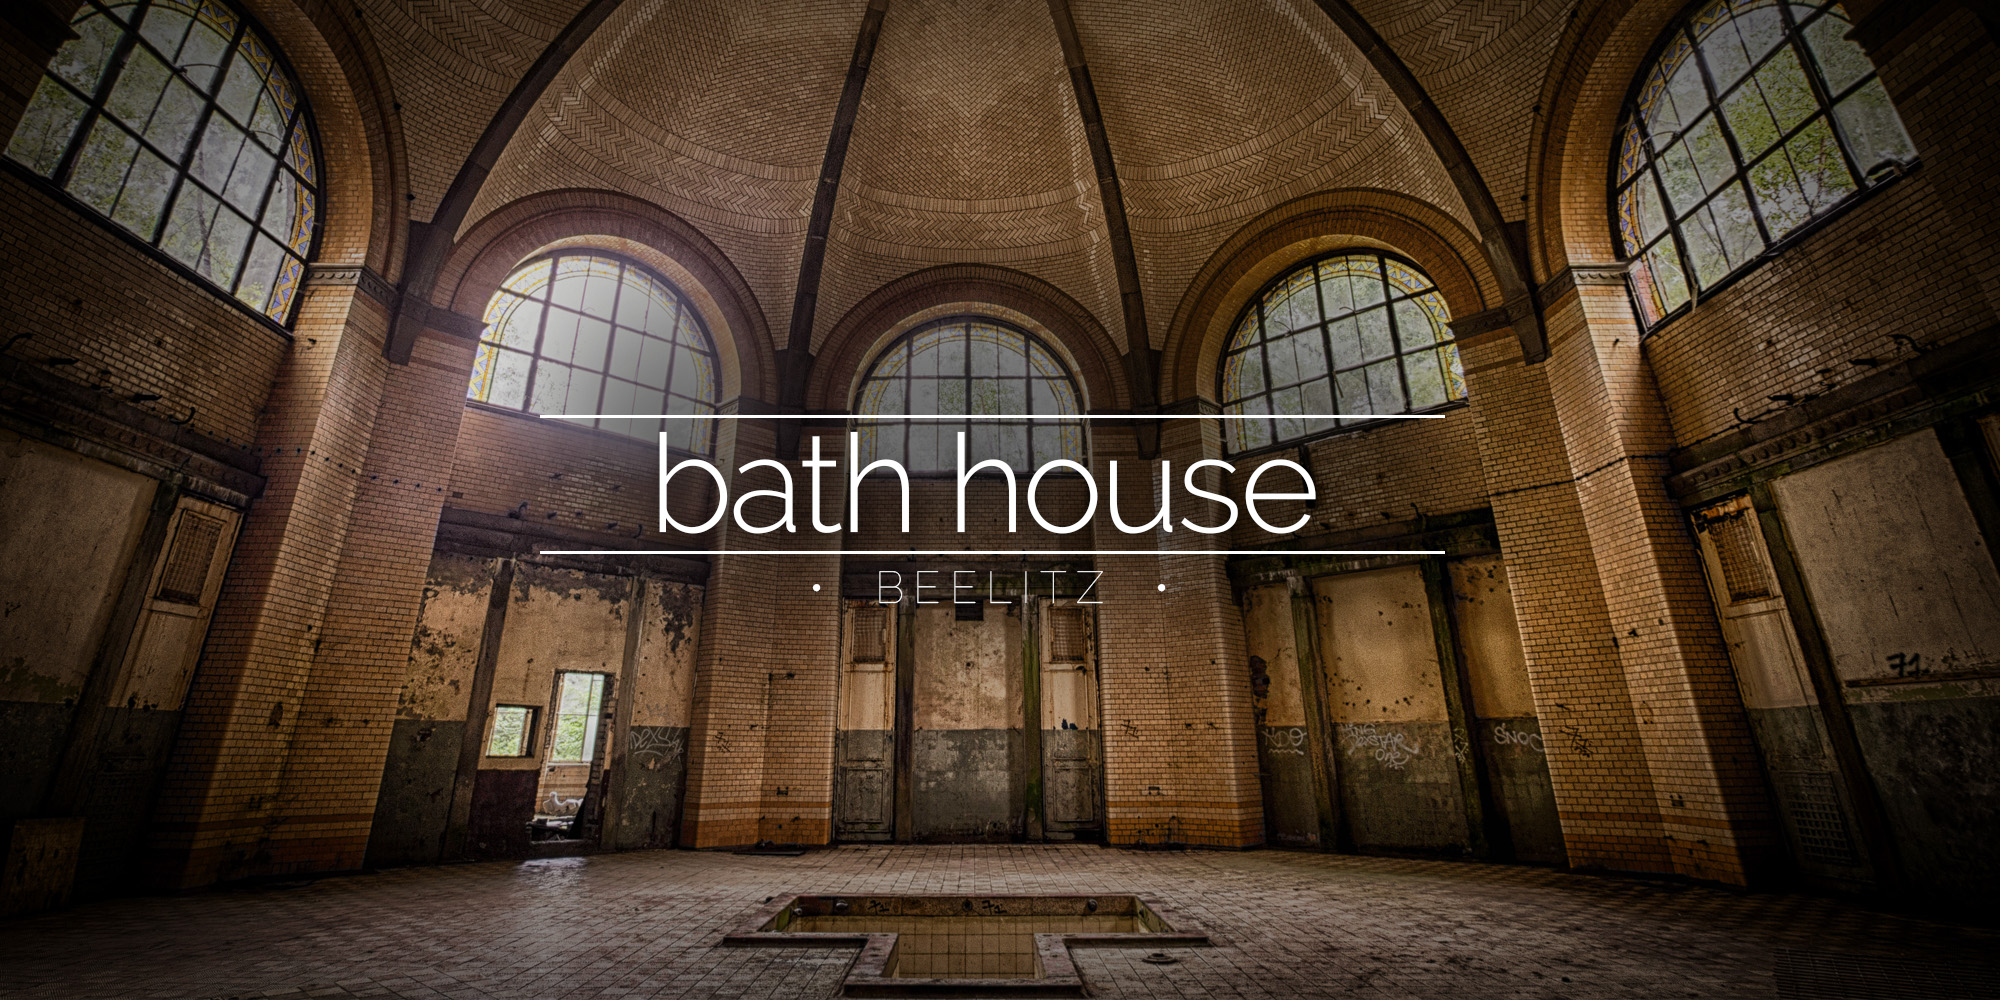 Beelitz Central Bath House